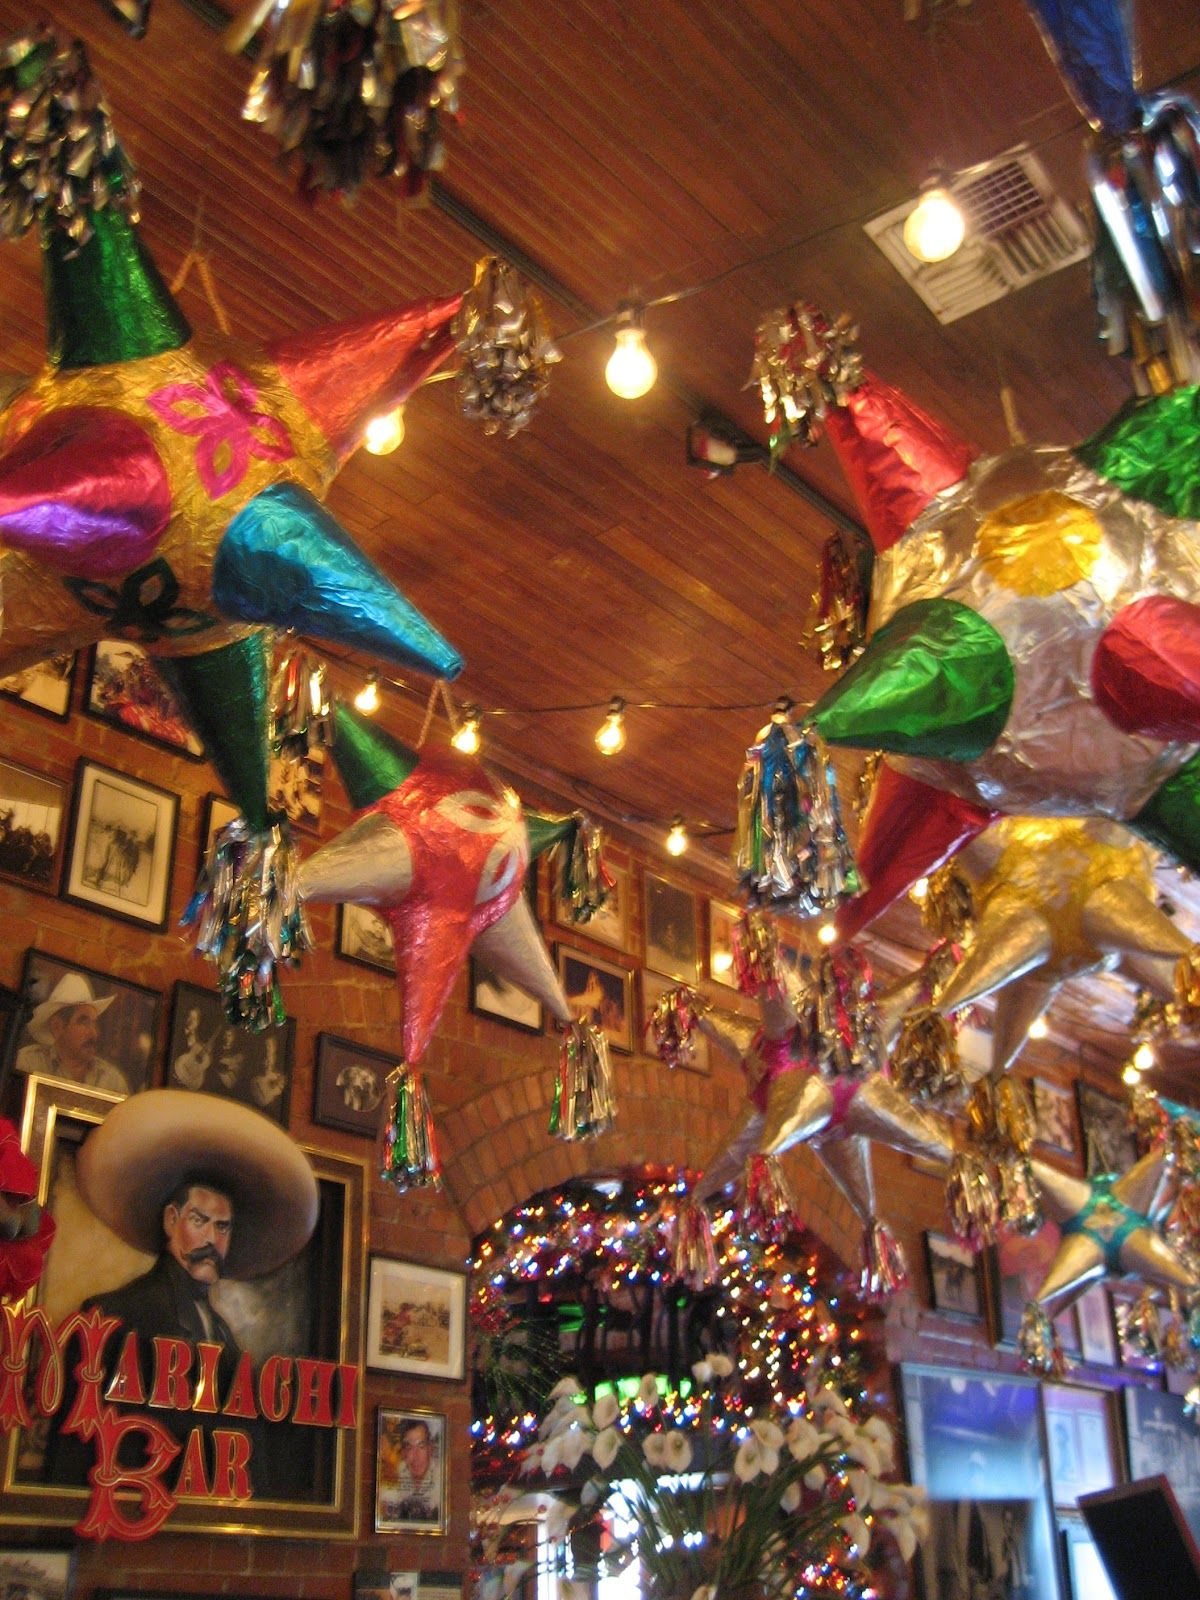 Mexican Decor In A Well Known Mexican Restaurant Called Mi Tierra In San  Antonio, Texas